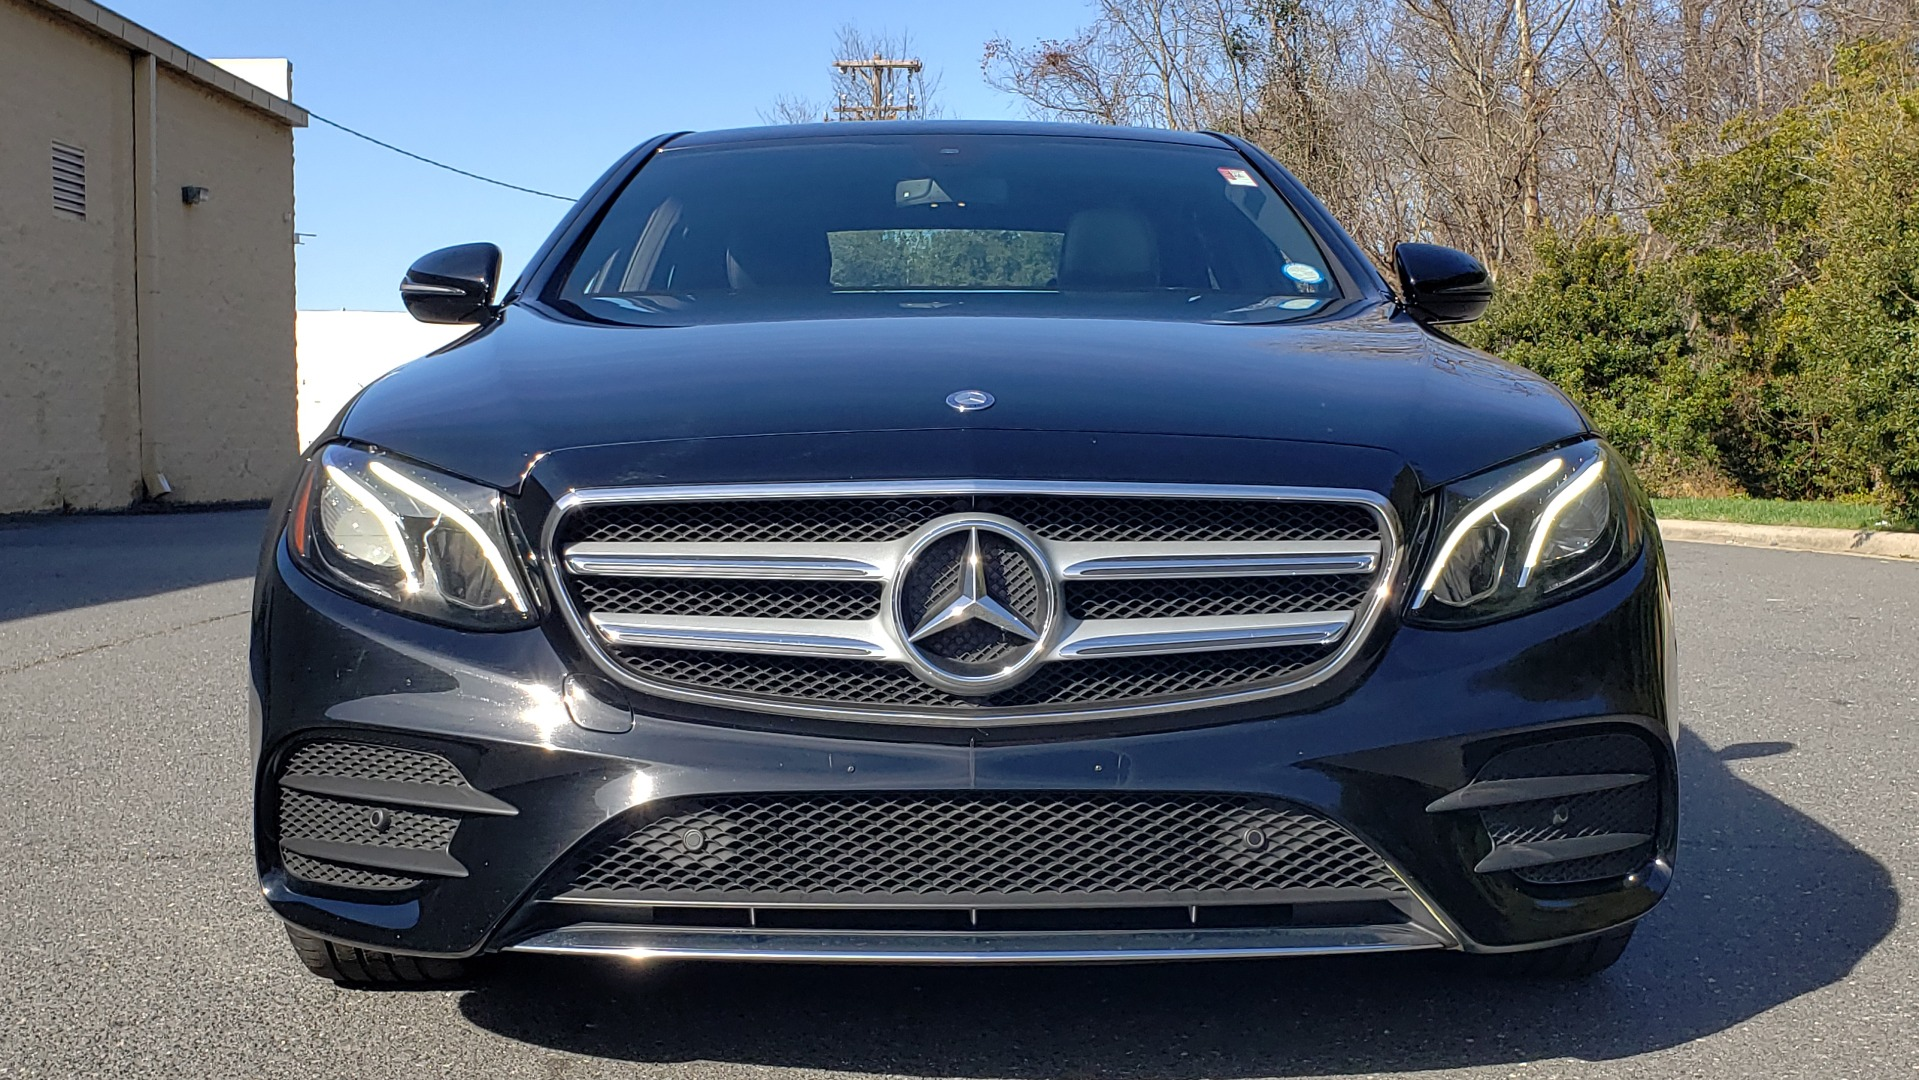 Used 2017 Mercedes-Benz E-CLASS E 300 PREMIUM / NAV / SUNROOF / BURMESTER / HTD STS / REARVIEW for sale Sold at Formula Imports in Charlotte NC 28227 21